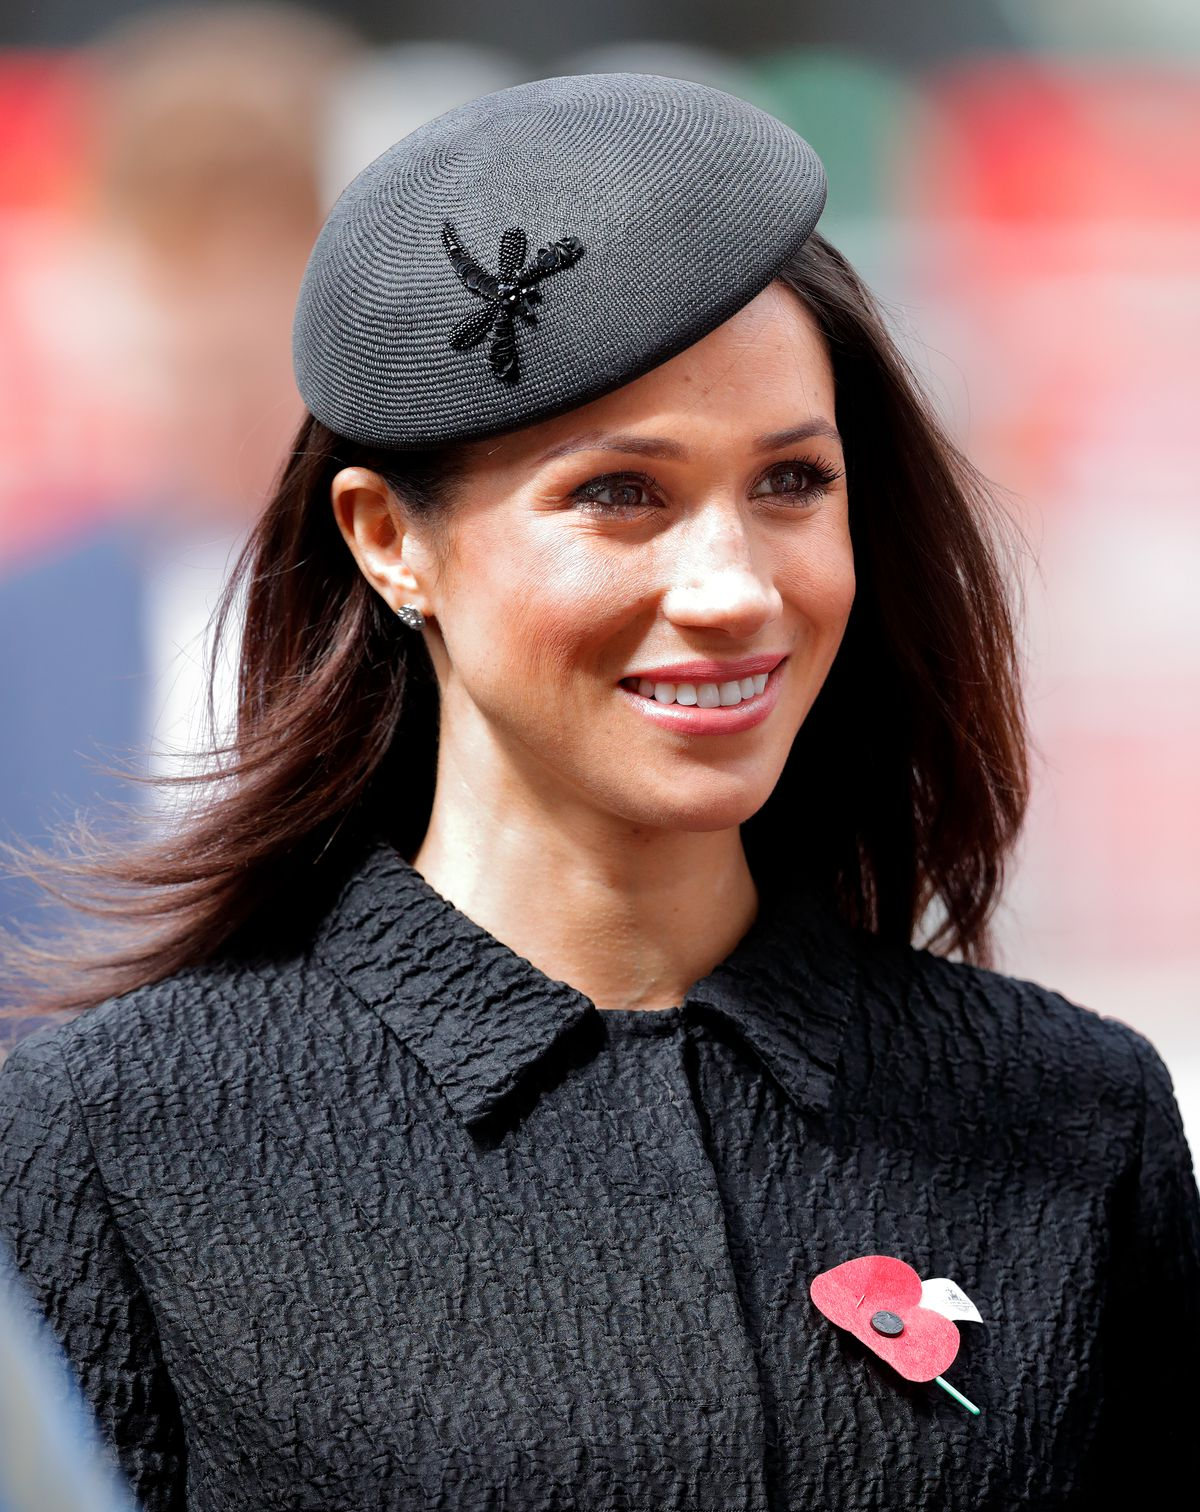 Meghan Markle wearing a black beanie and smiling in the sunshine